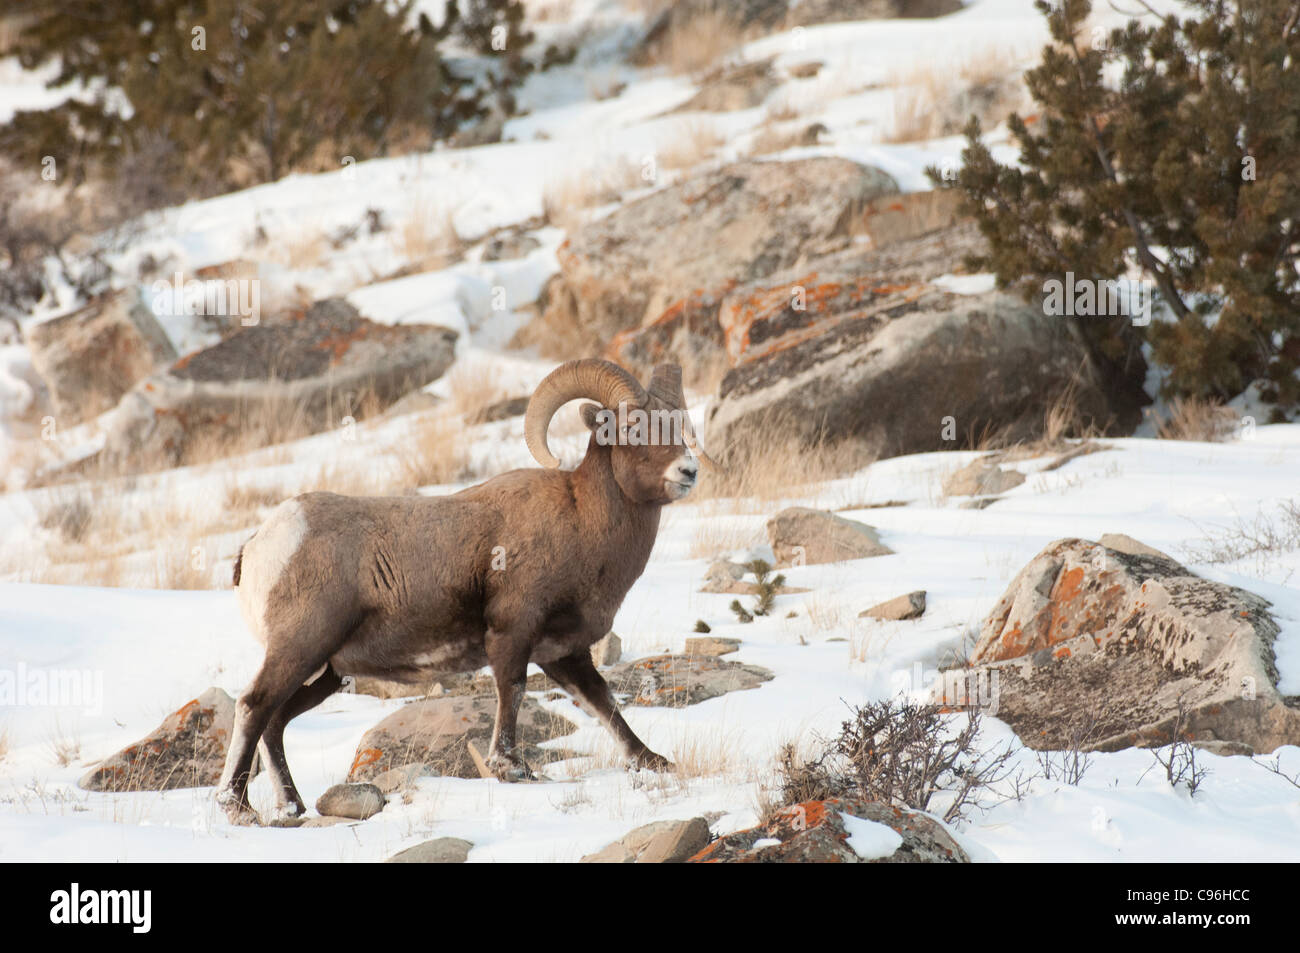 United States, Wyoming, Jackson Hole, big horn sheep graze in the gros ventre range. - Stock Image